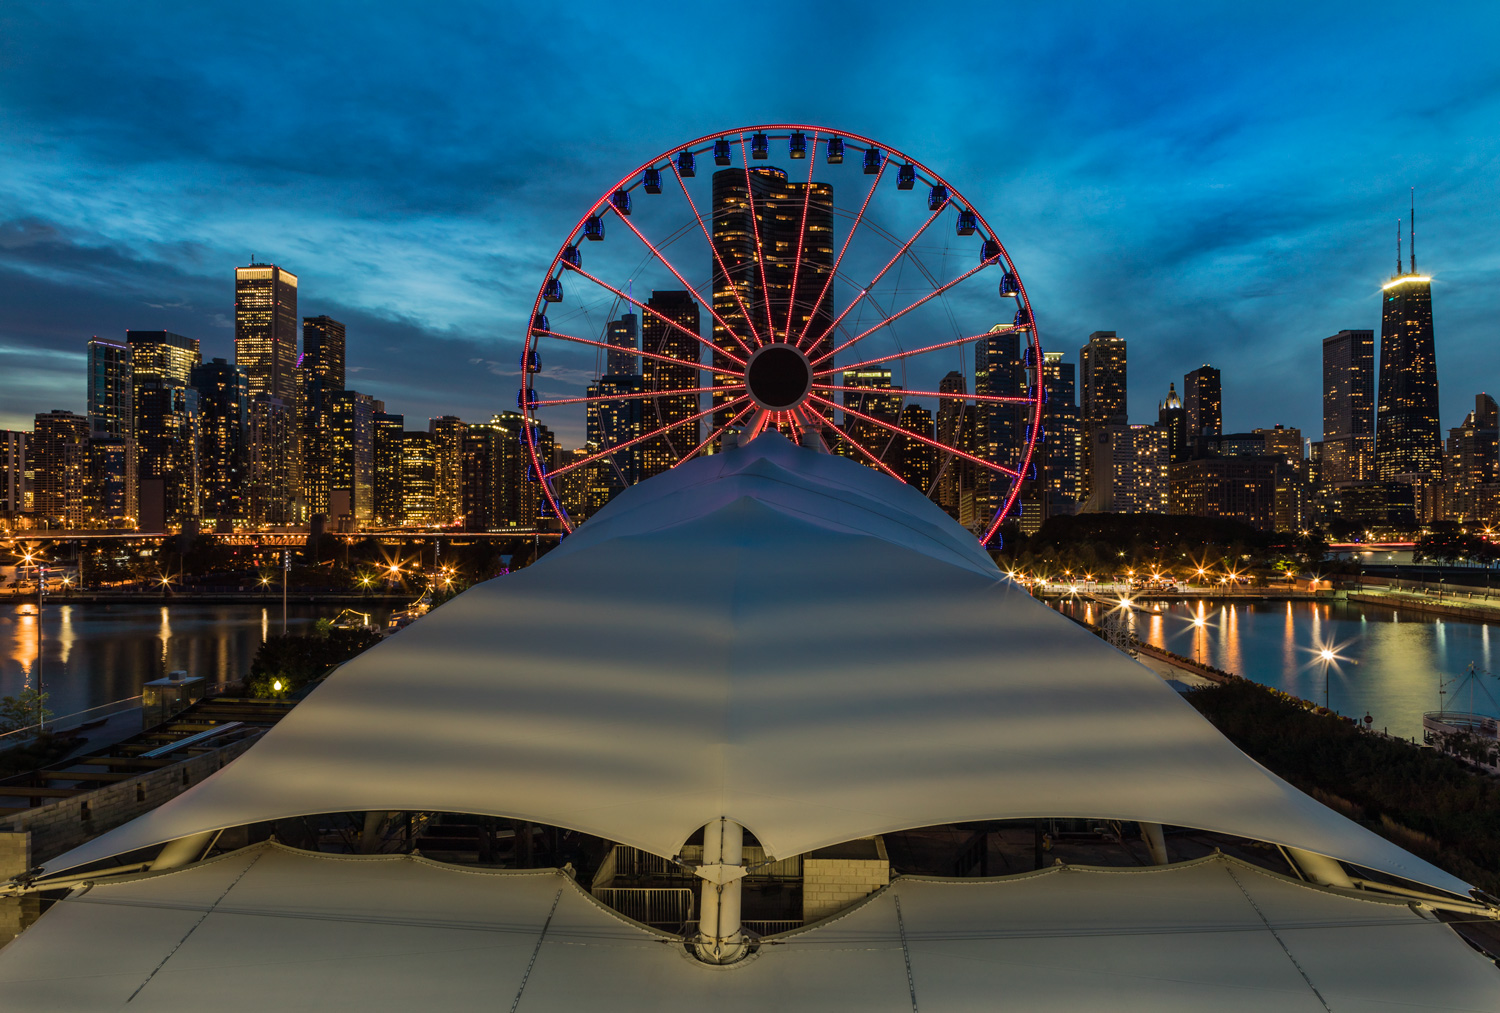 the_eye_of_chicago_wedding_photographer_algonquin.jpg